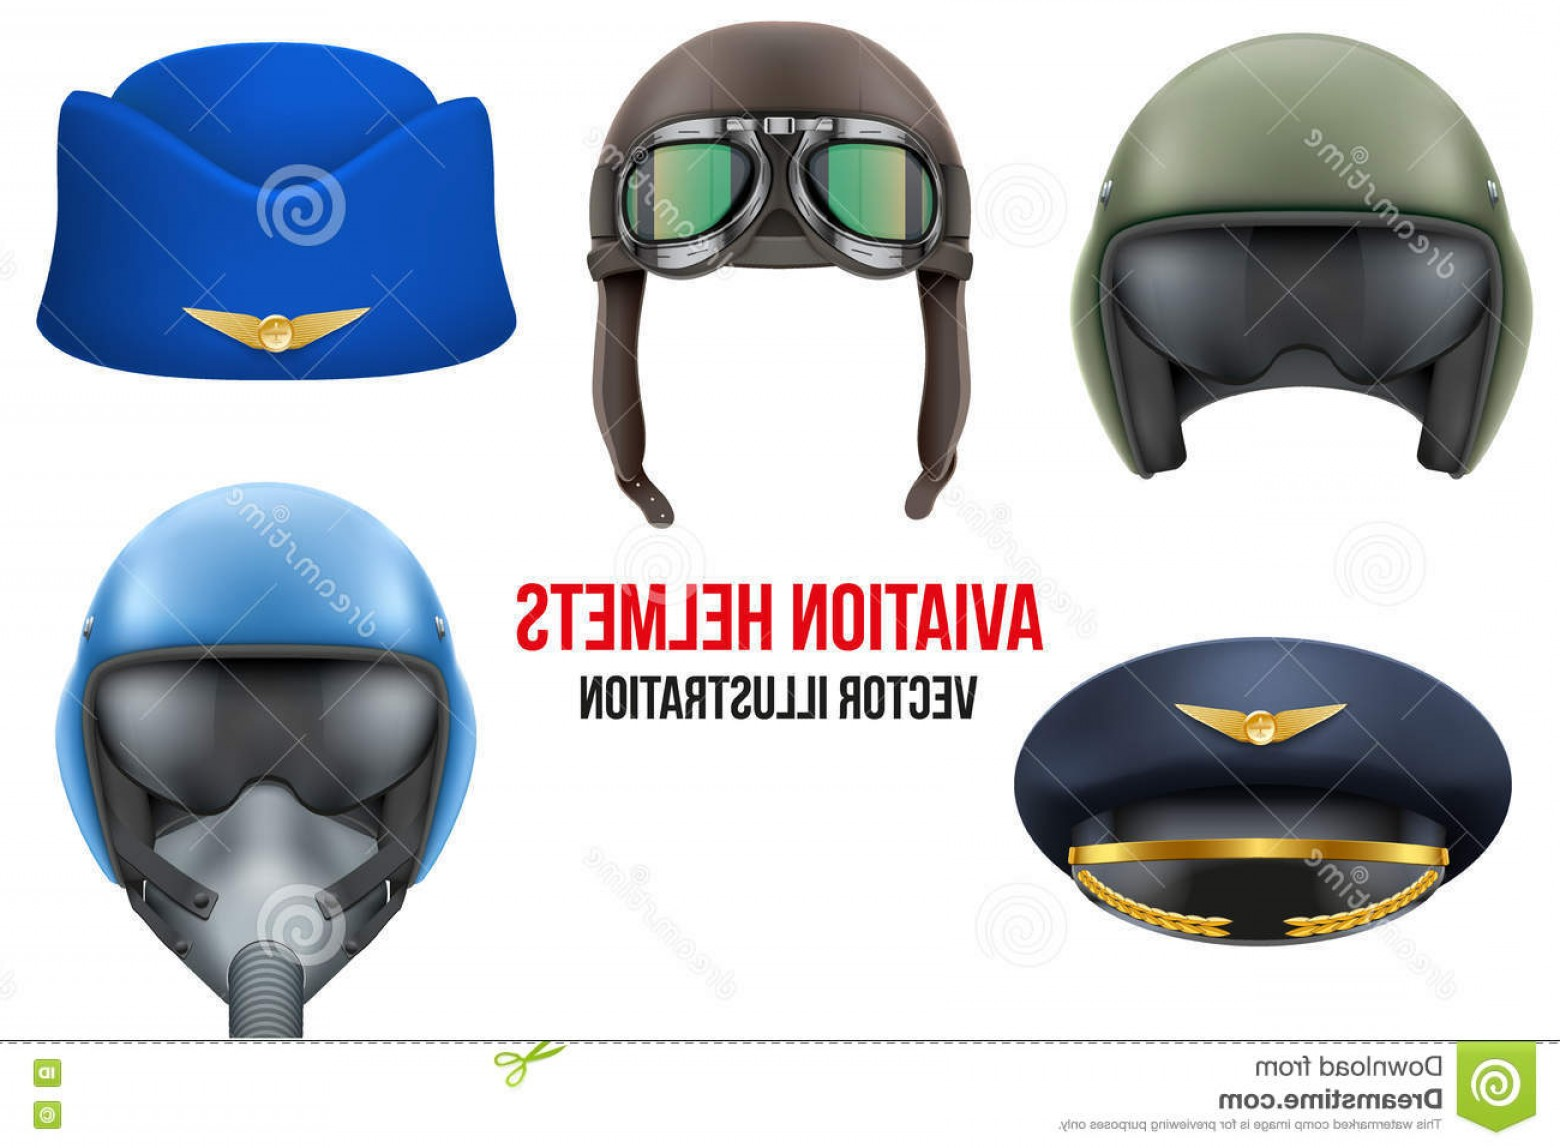 Fighter Helmet Vectors: Stock Illustration Set Aviator Helmets Hats Headgear Aviation Professional Workers Vector Illustration Isolated White Background Image